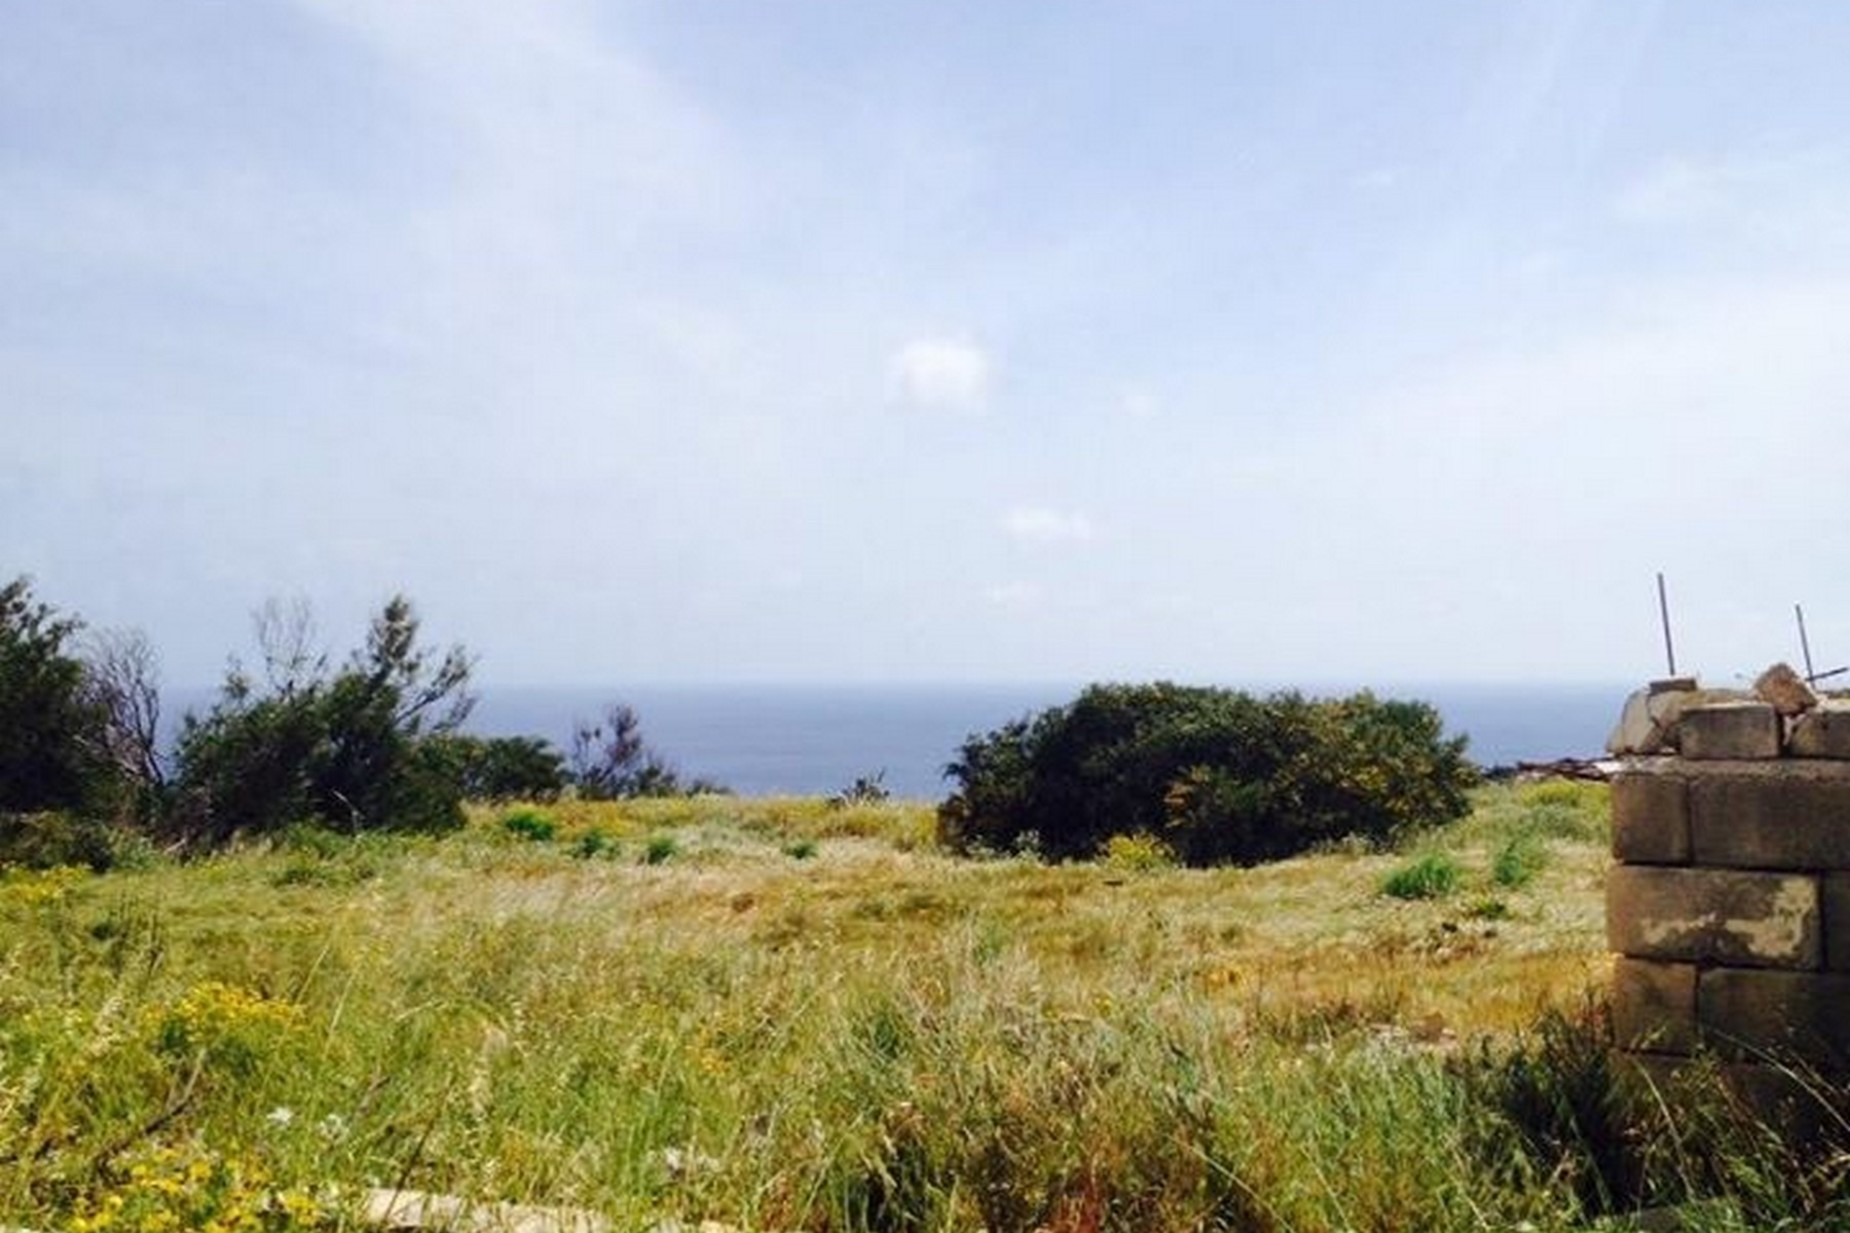 0 bed Site Residential For Sale in Zurrieq, Zurrieq - thumb 10